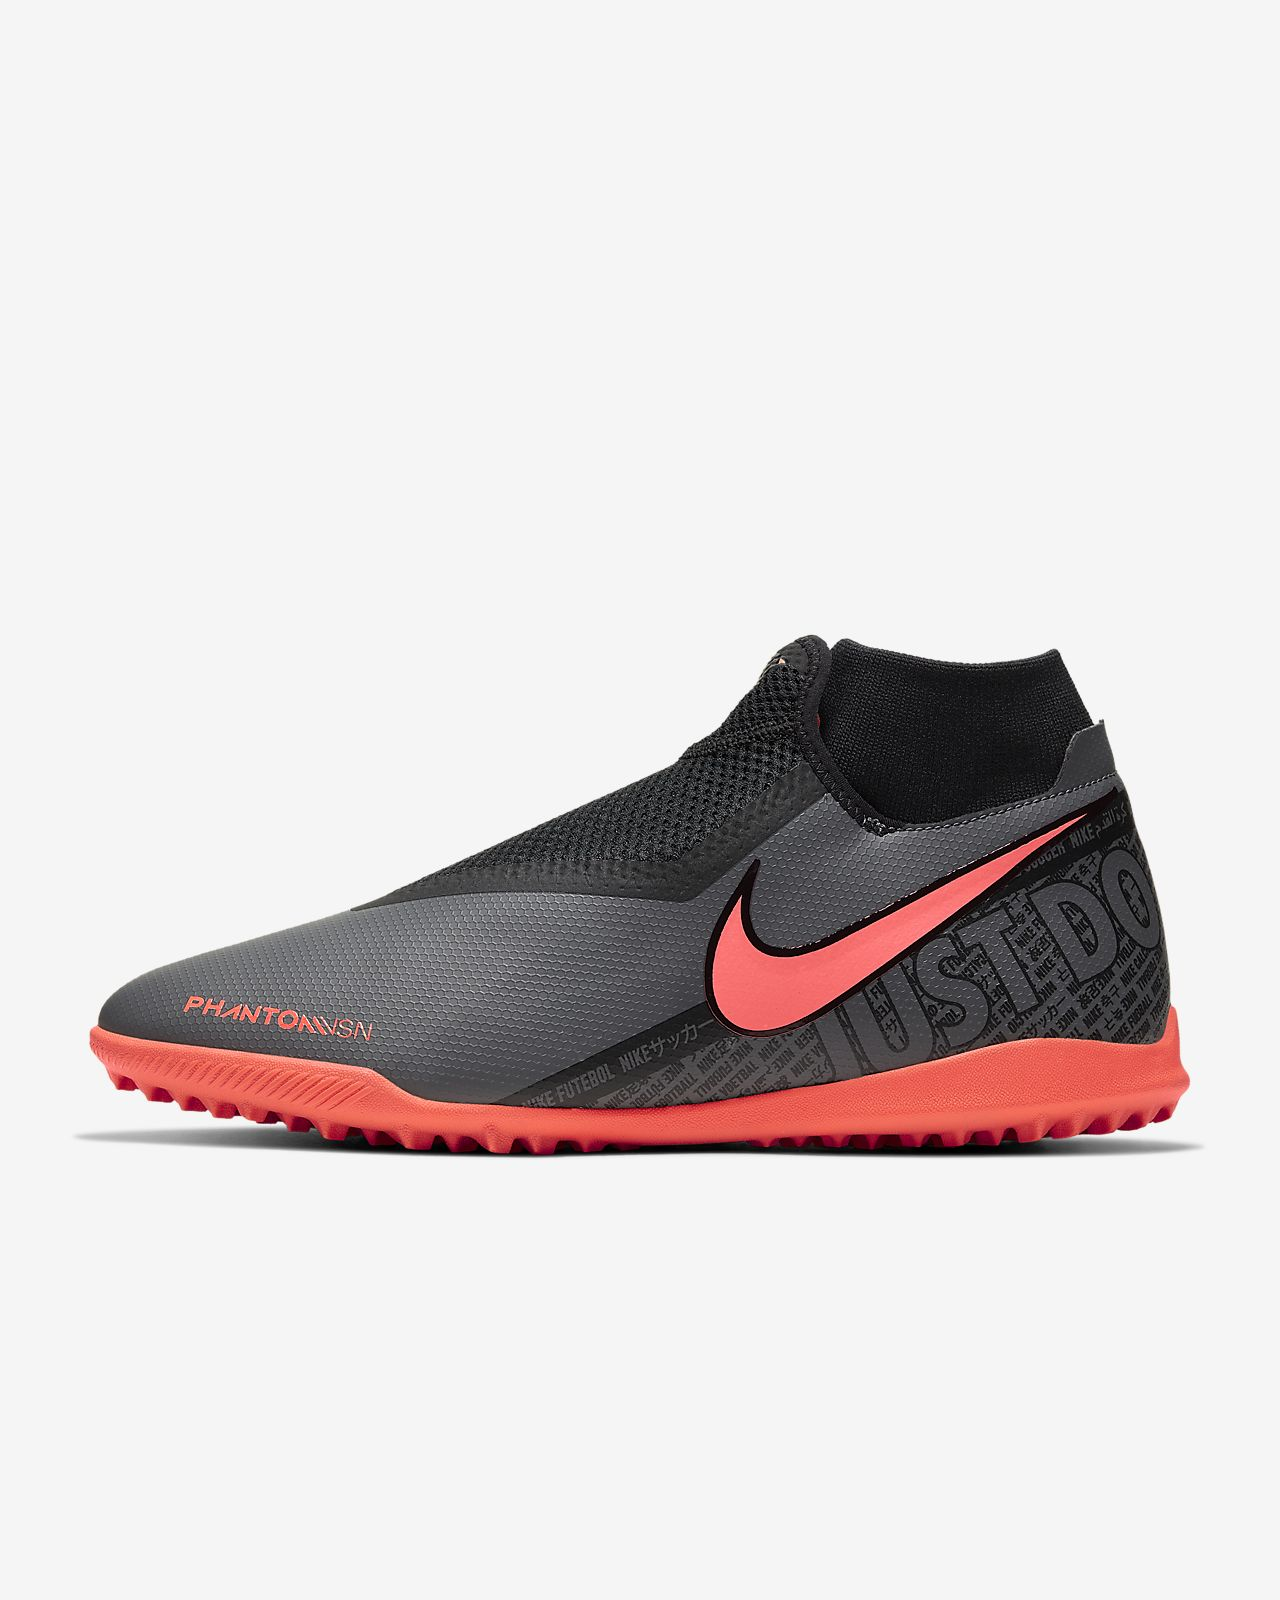 Chaussure de football pour surface synthétique Nike Phantom Vision Academy Dynamic Fit TF